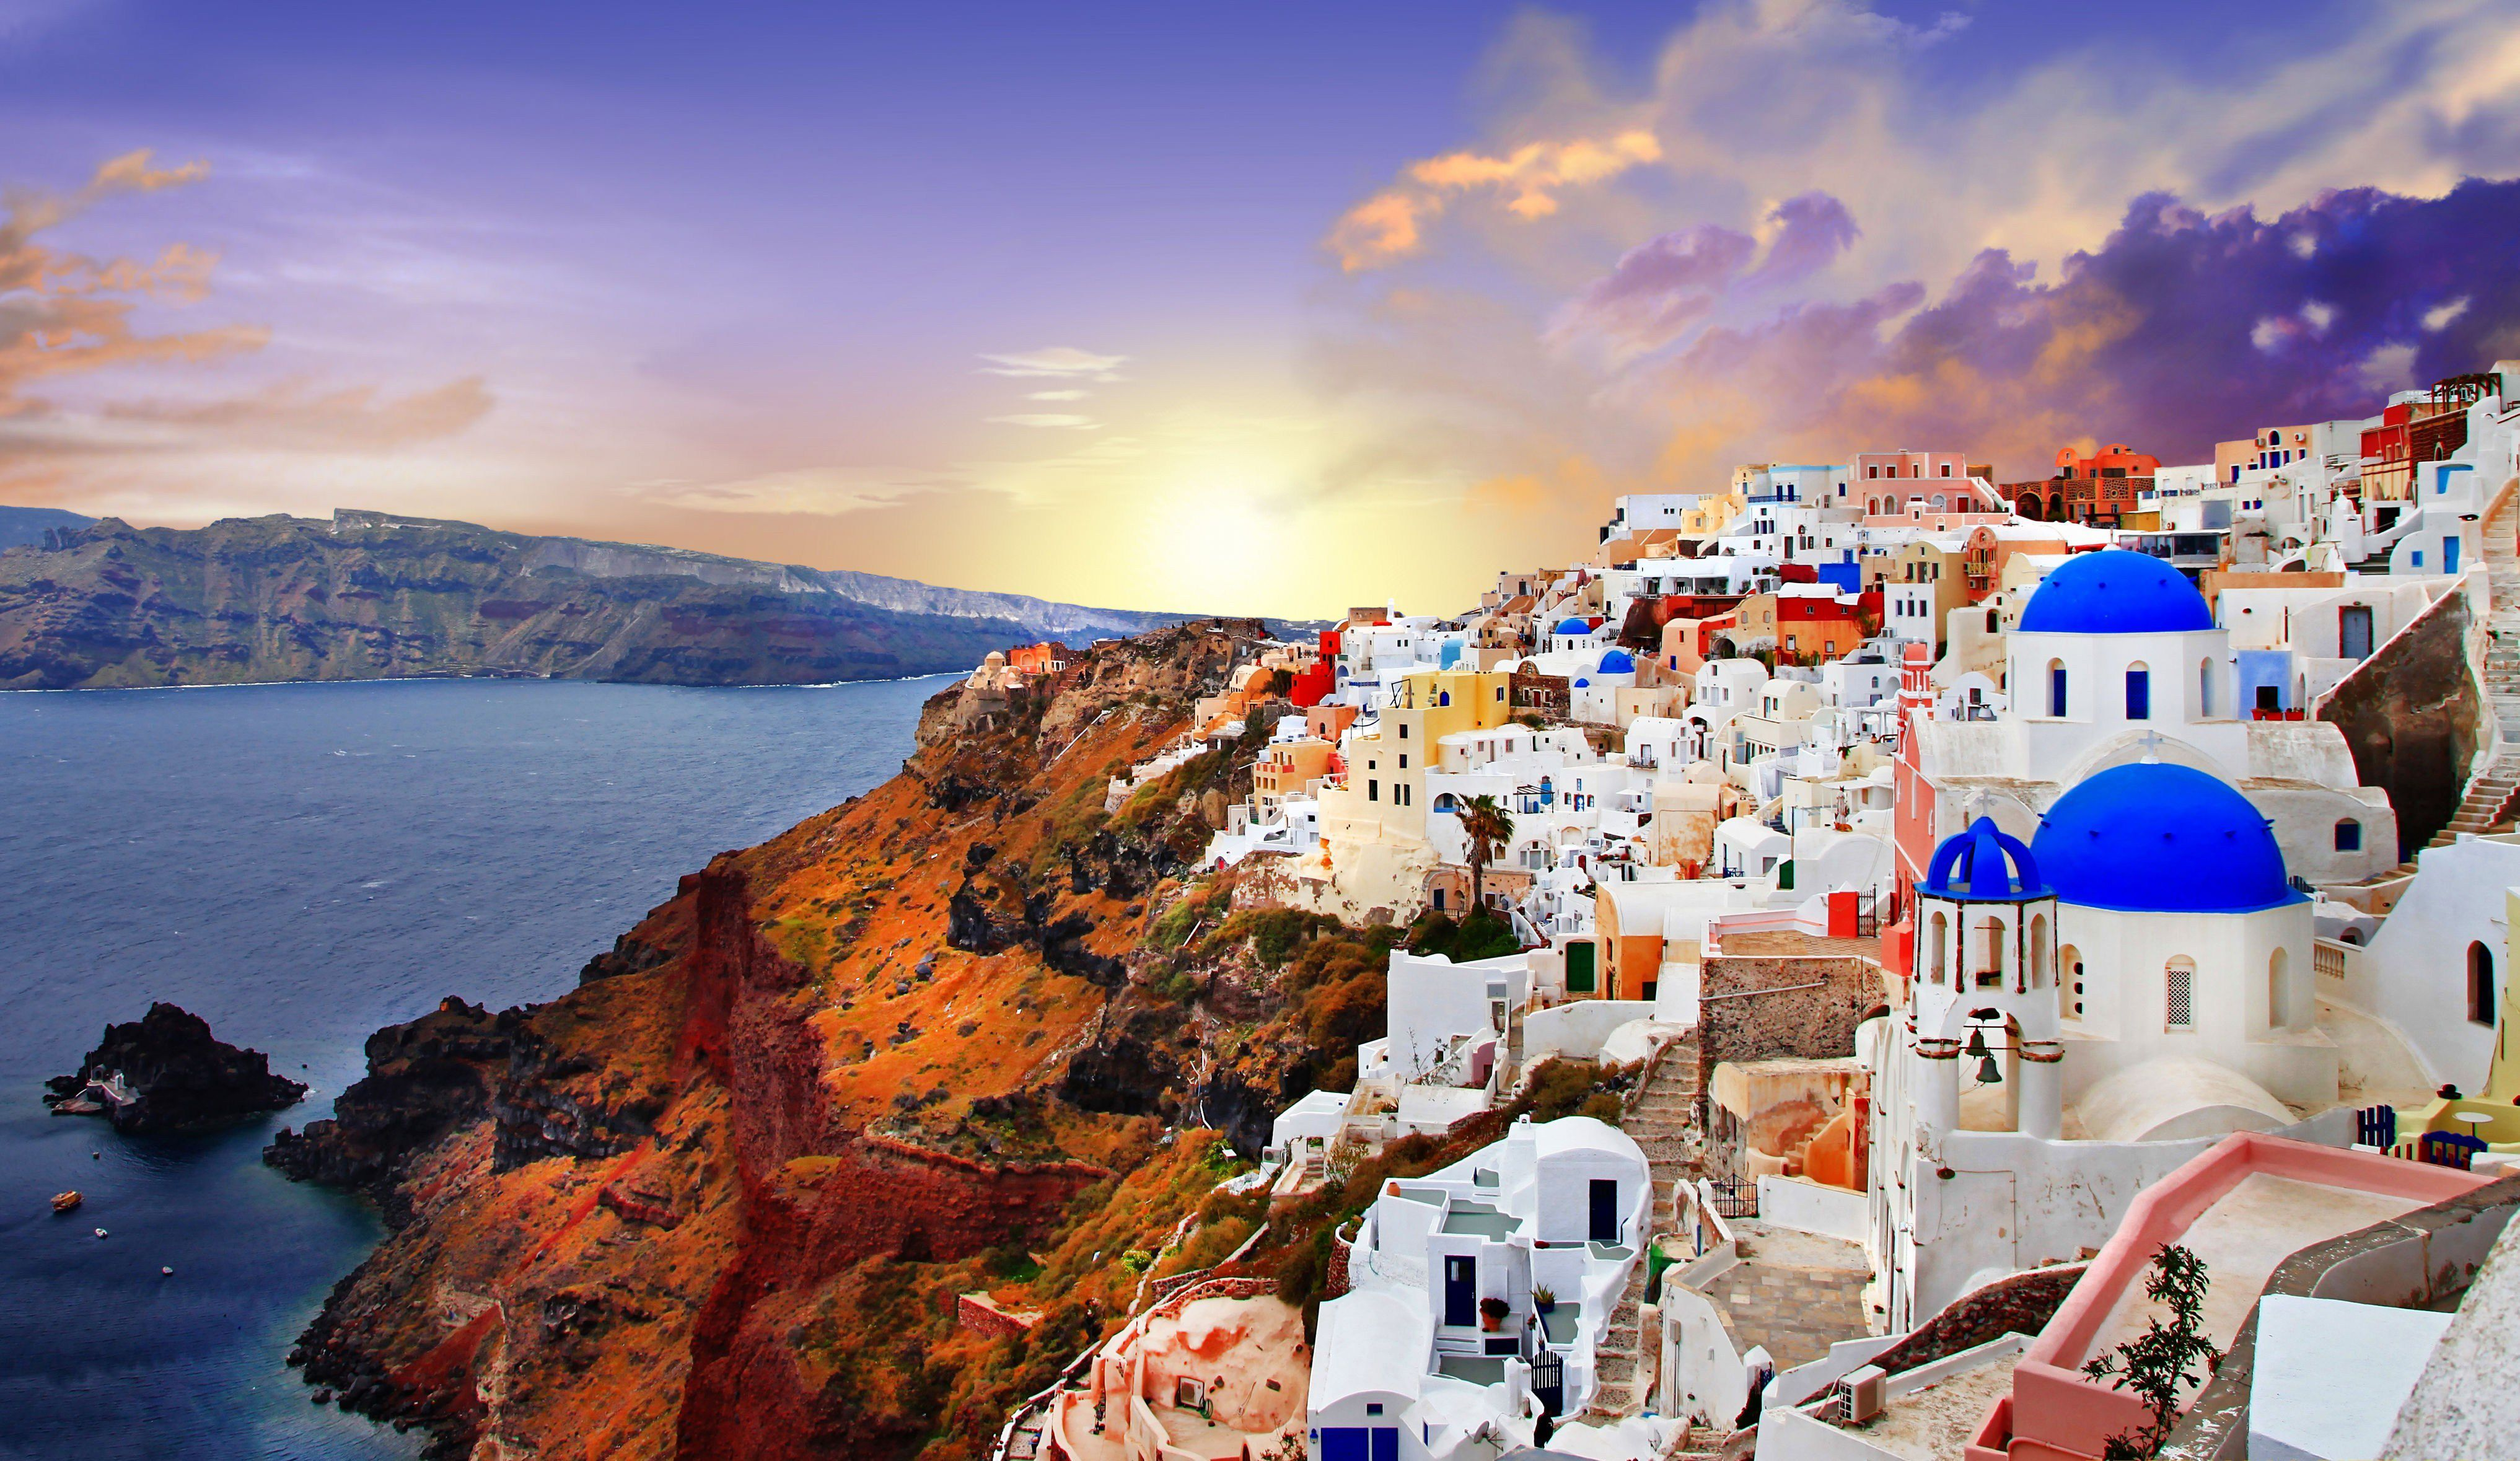 70 Santorini Wallpapers   Download at WallpaperBro 4067x2358